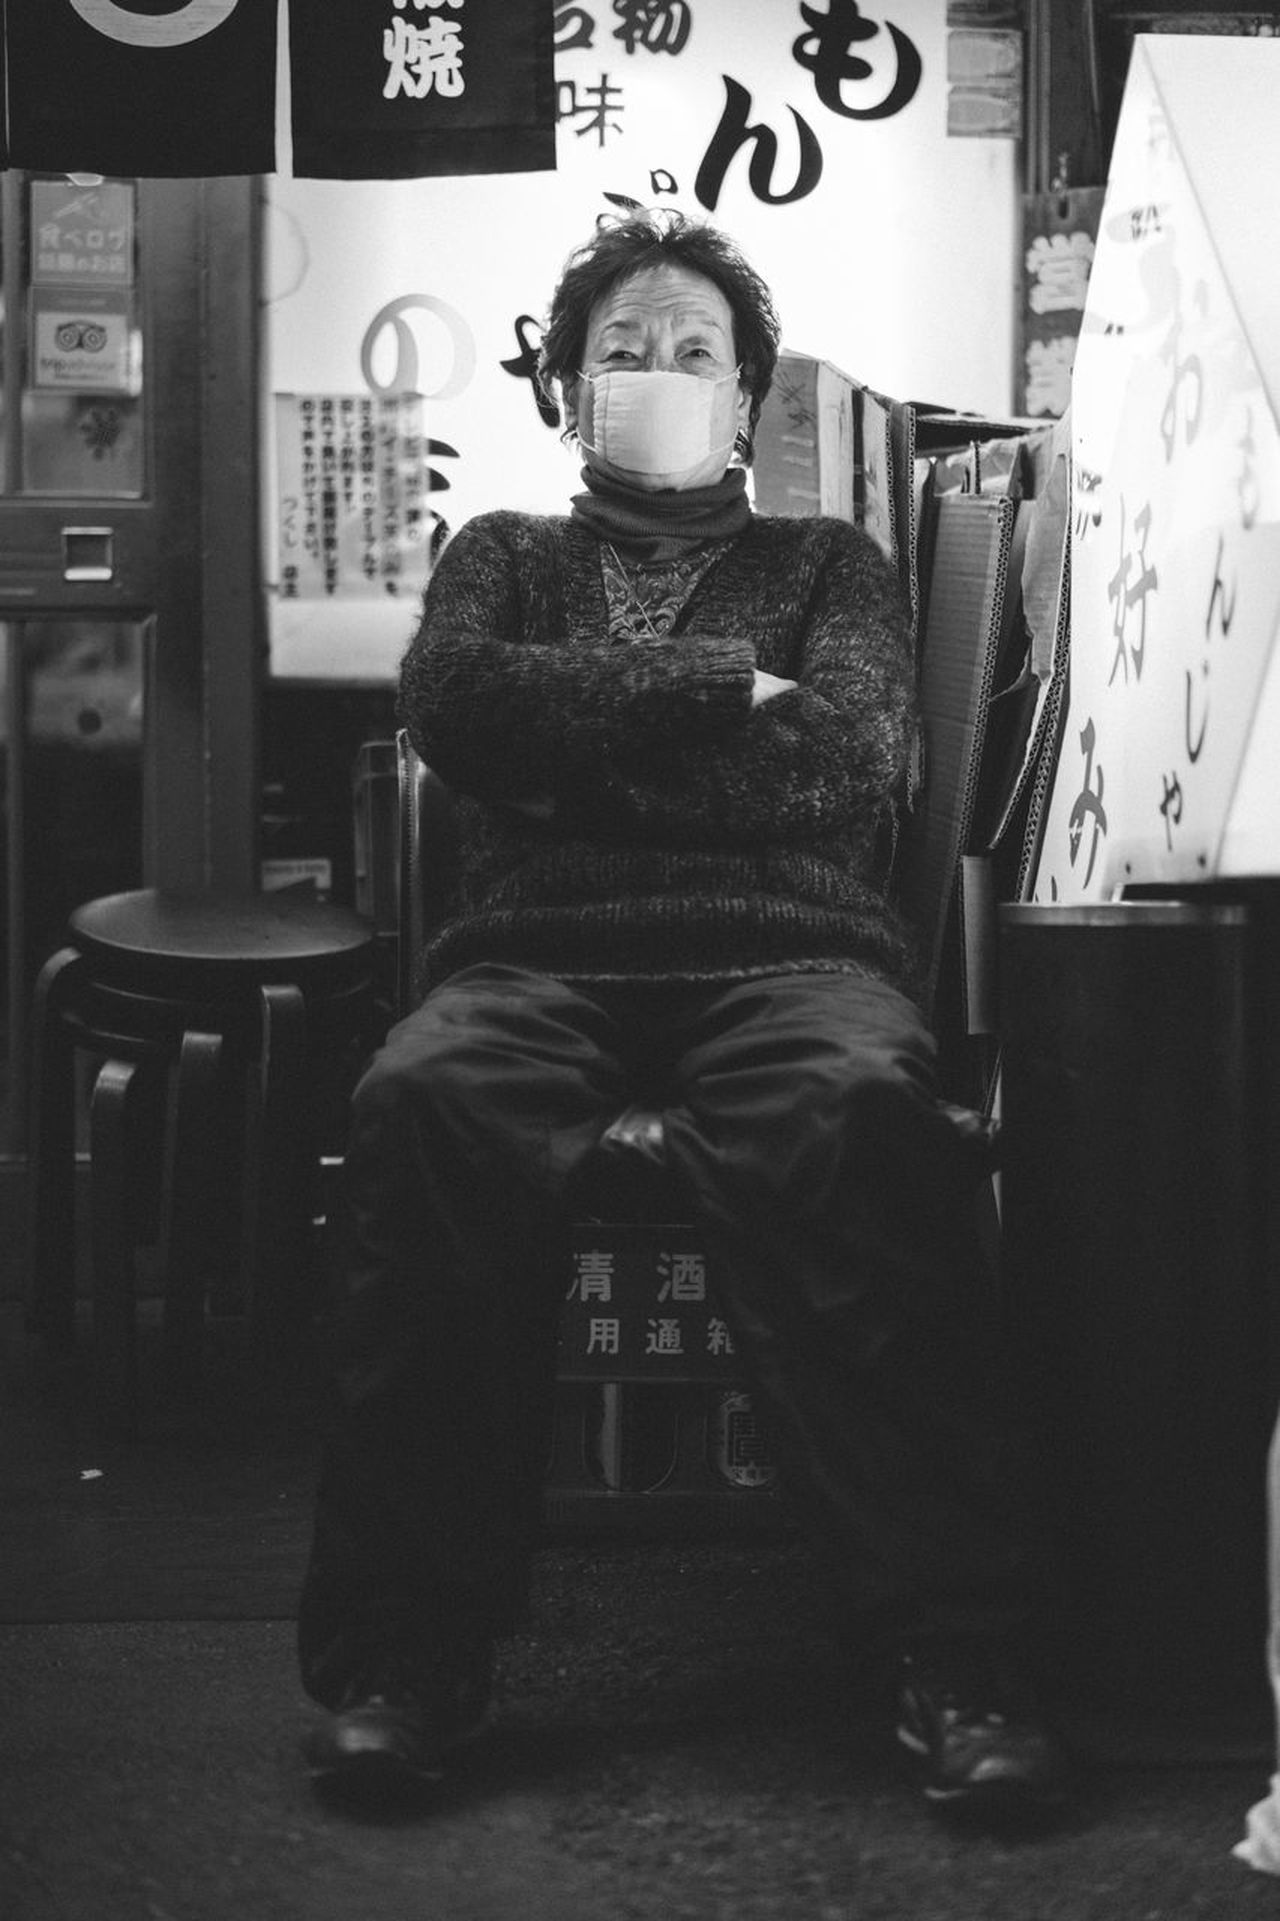 Attitude Chair Crossed Legs Defiance Elderly Woman Frontin Japan Mask Night One Person Real People Seating Sitting Street Photography Street Portrait Streetphotography Streetportrait The Street Photographer - 2017 EyeEm Awards Woman